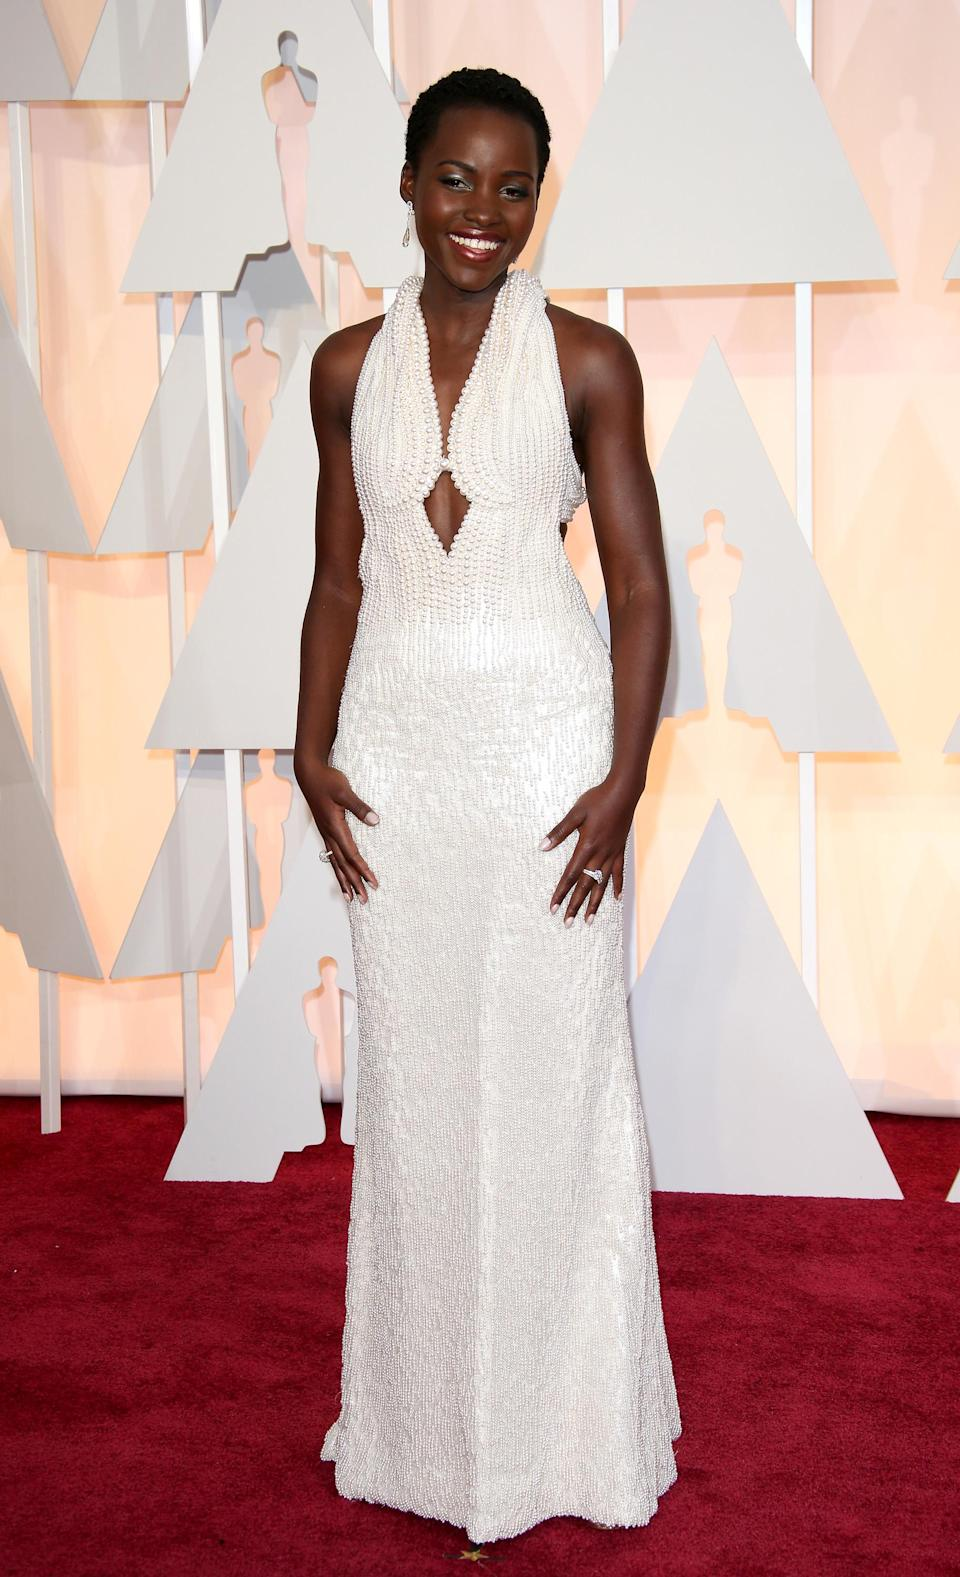 Lupita's pearly Prada gown deserved an awards of its own at the 2015 Oscars. A light-blue, plunge neck affair, it featured a halter neck and a dramatic back – along with 6,000 pearls. Wow.